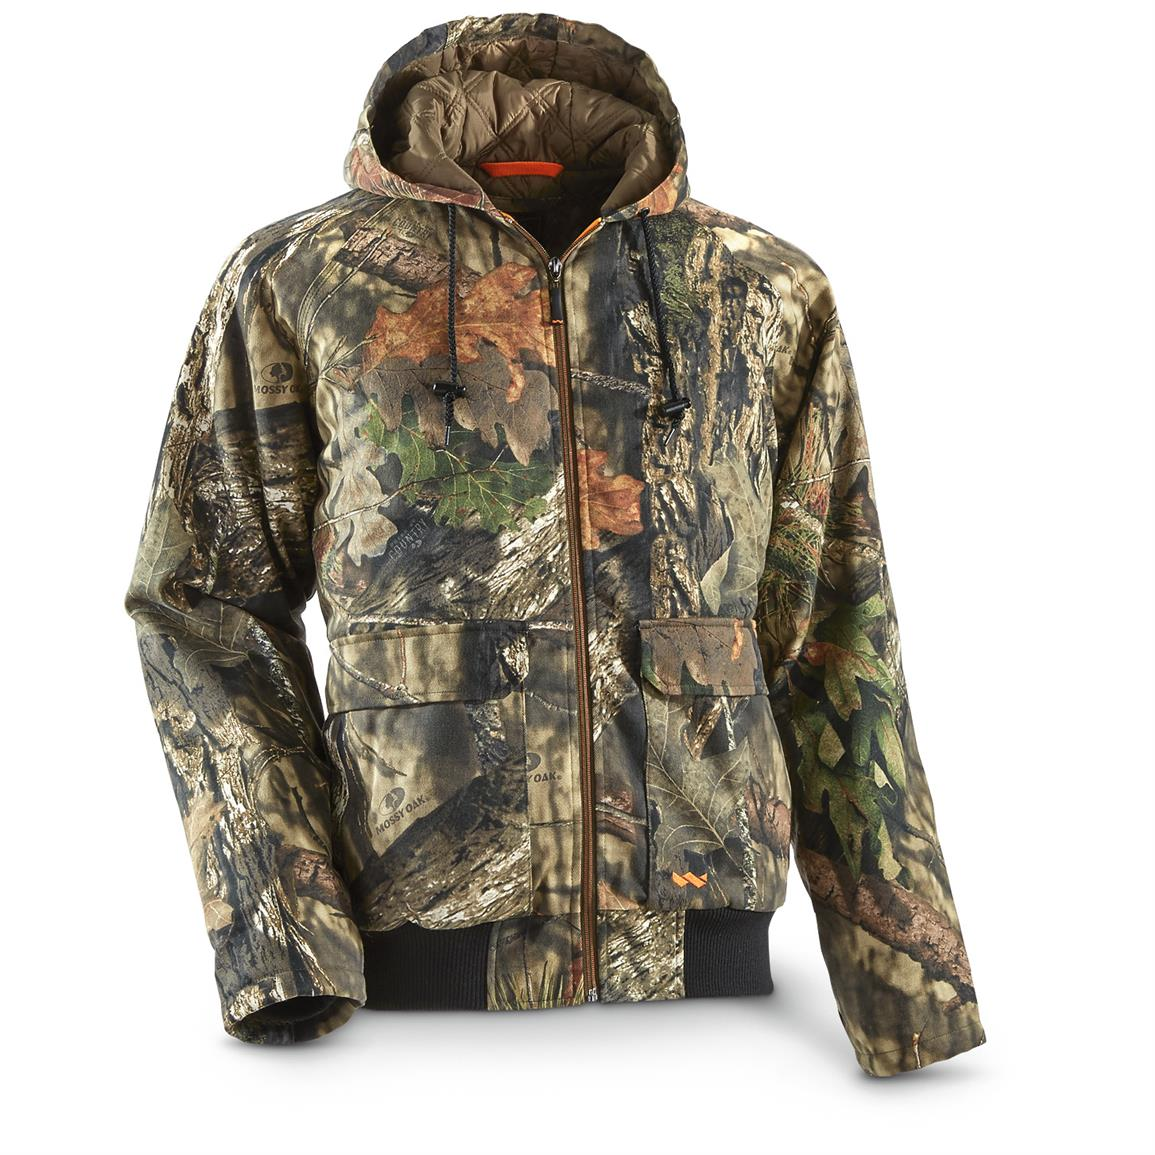 Walls Men's Insulated Camo Bomber Jacket, Mossy Oak Break-Up Country